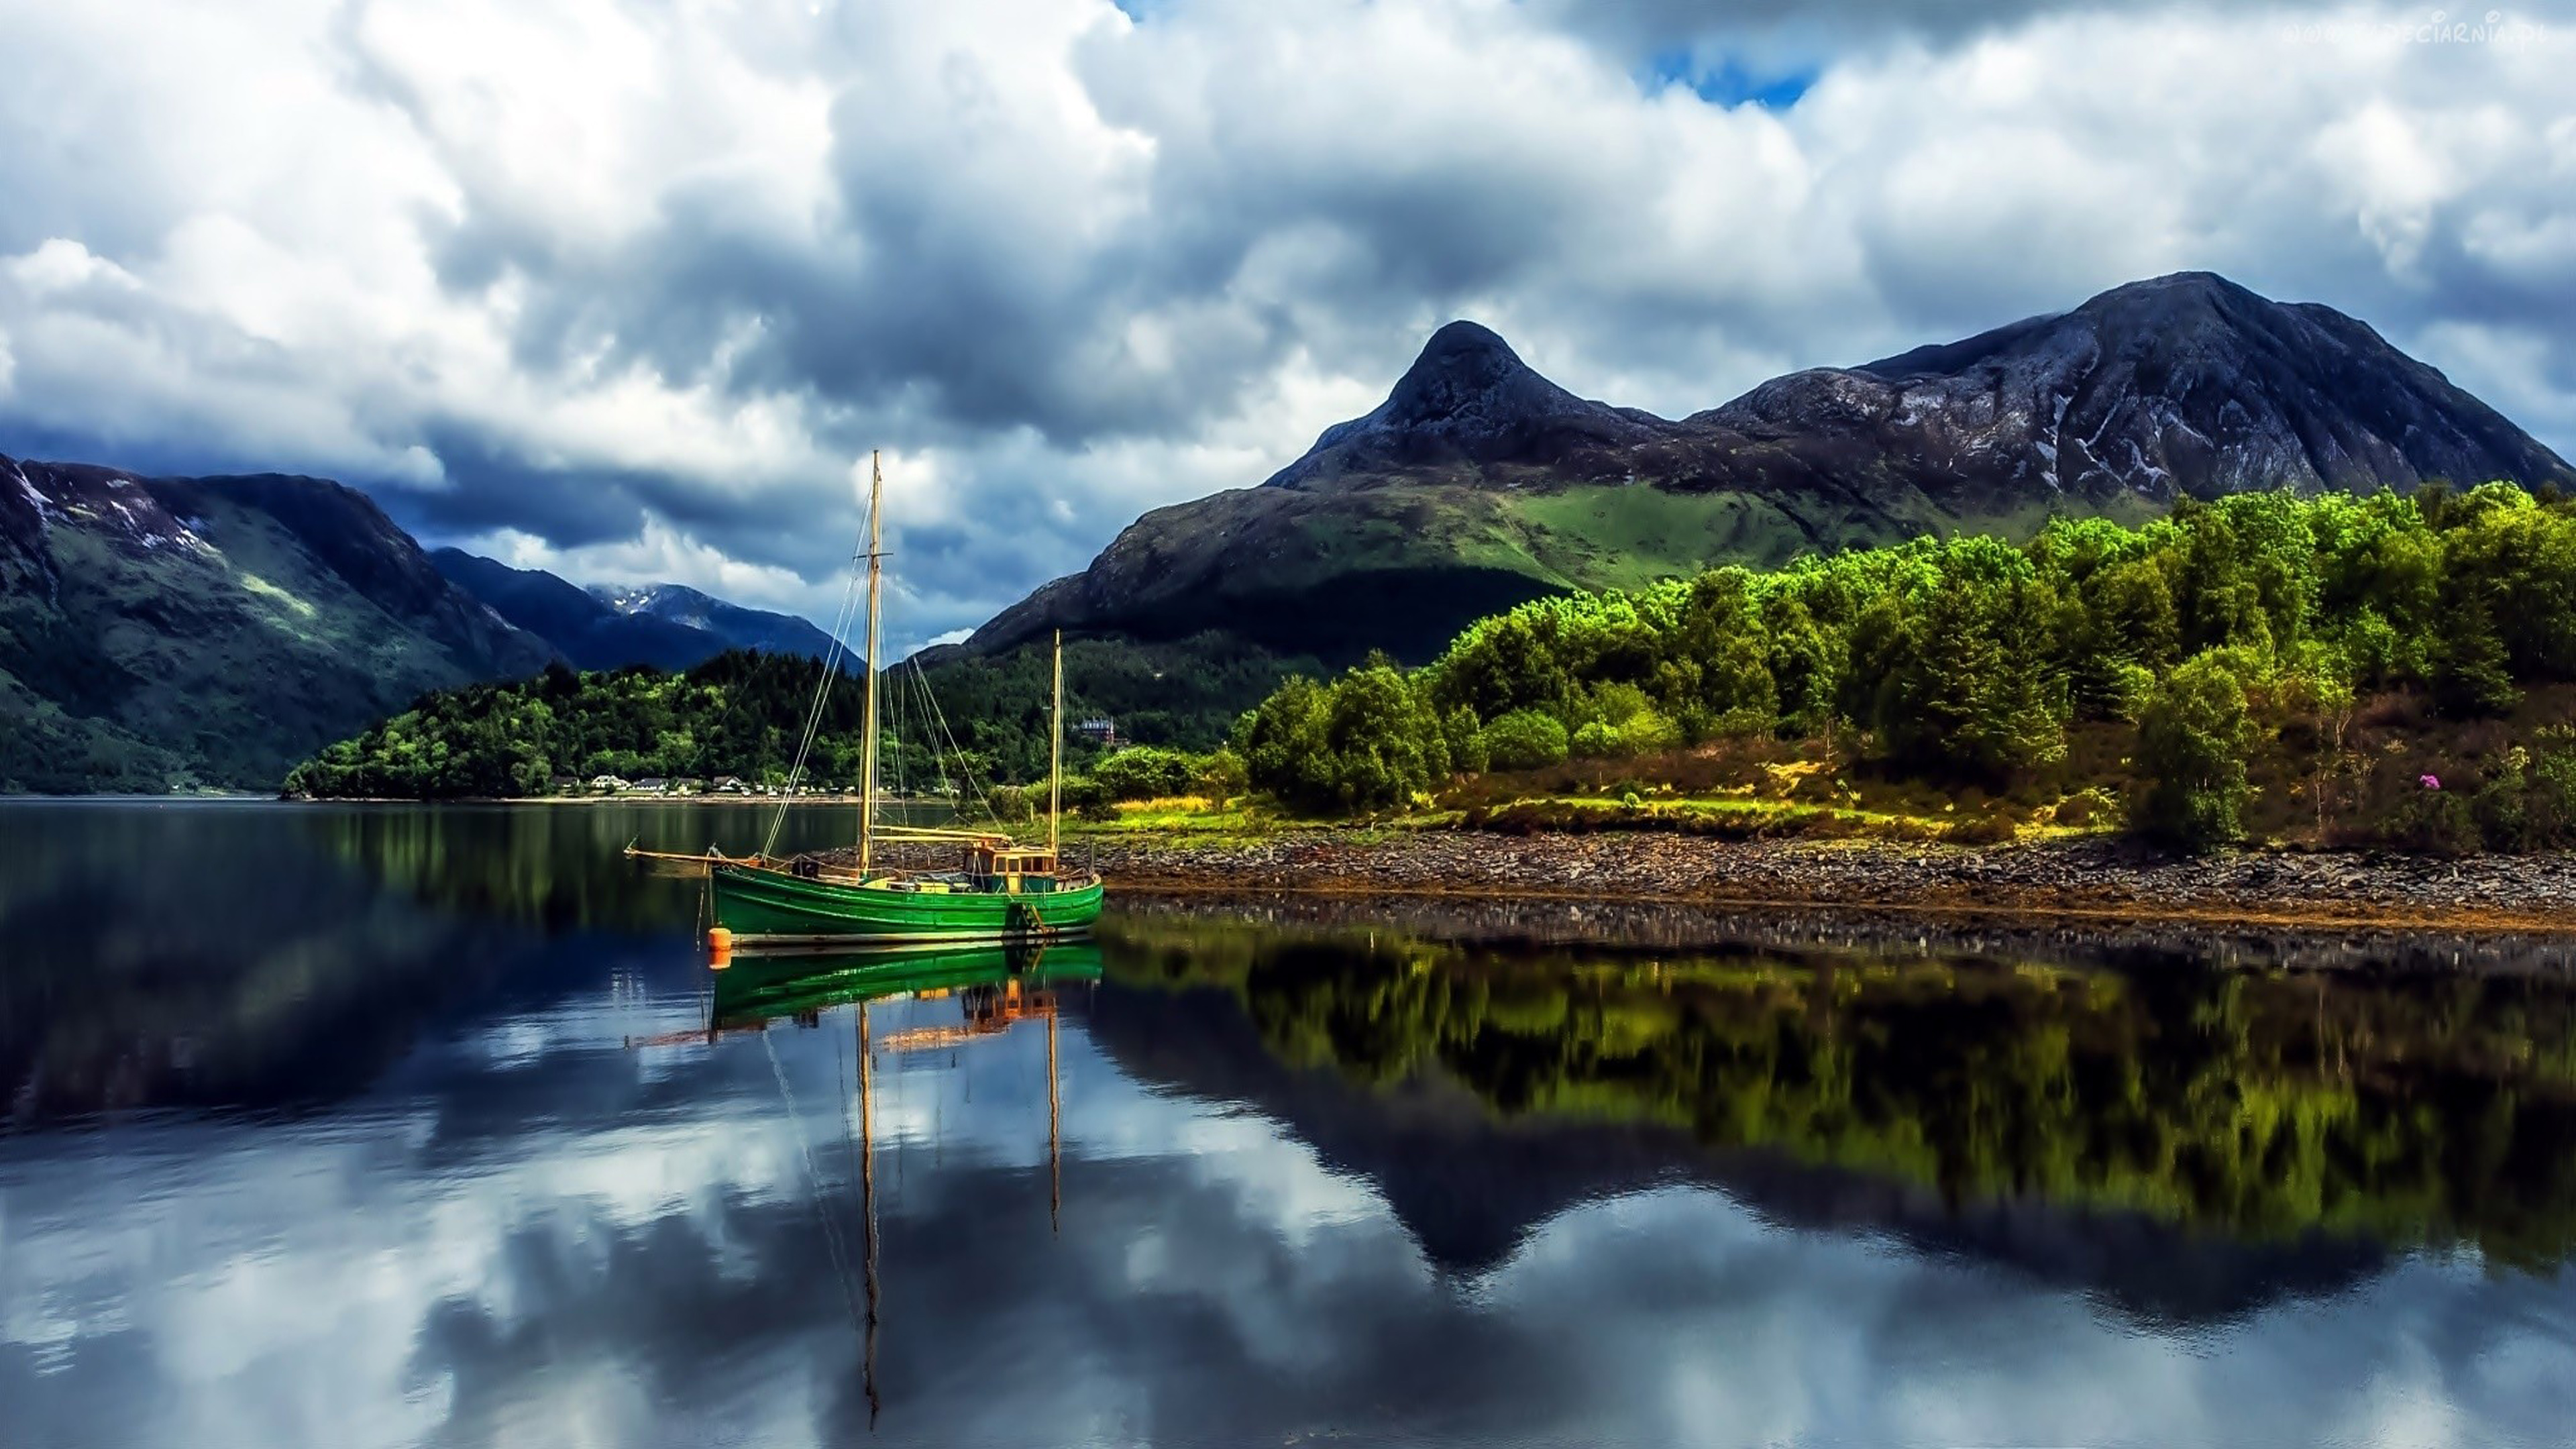 Nature Landscape Mountains Lake Green Boat With Sails Cloudy Sky With Dark Clouds Scotland